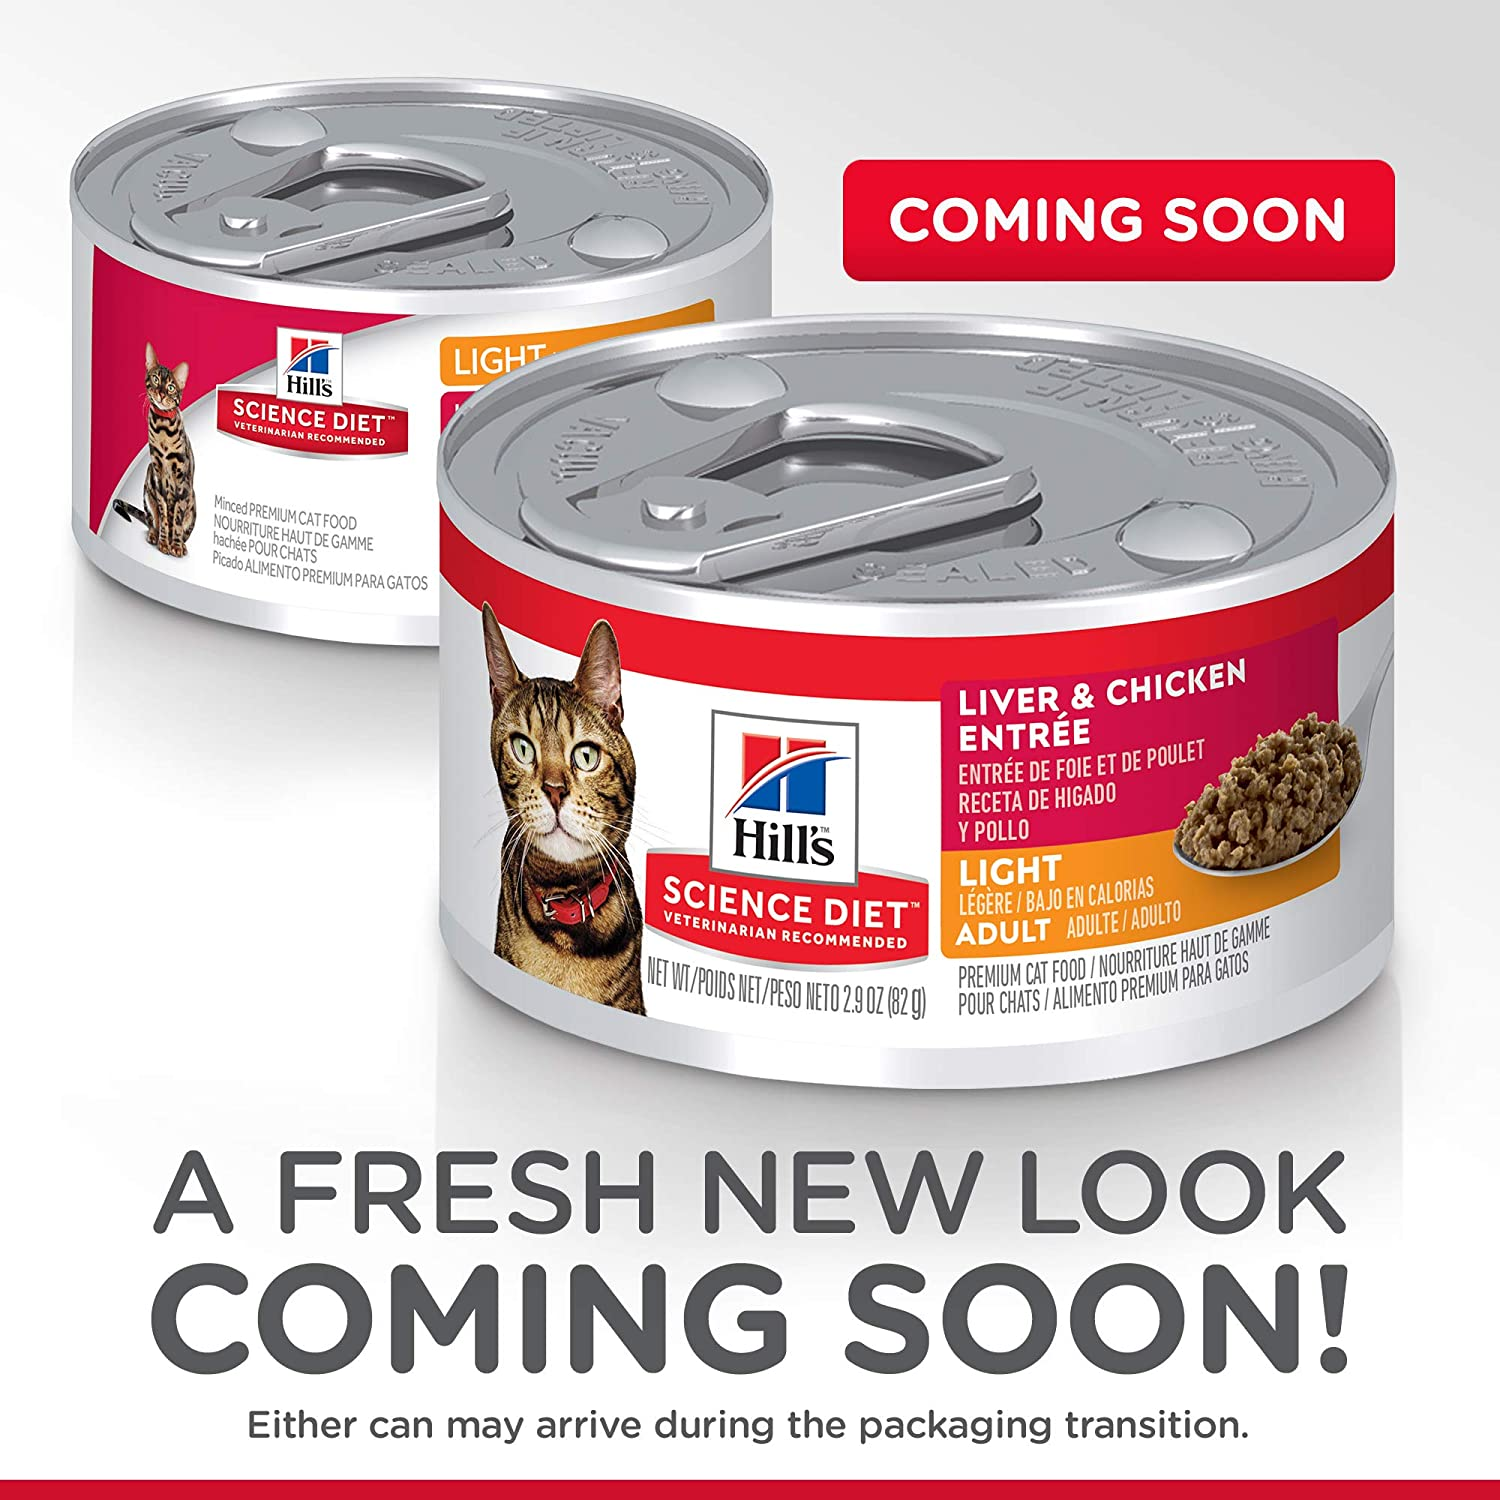 Amazon.com : Hills Science Diet Wet Cat Food, Adult, Light for Healthy Weight & Weight Management, Liver & Chicken Recipe, 2.9 oz Cans, 24-pack : Pet ...